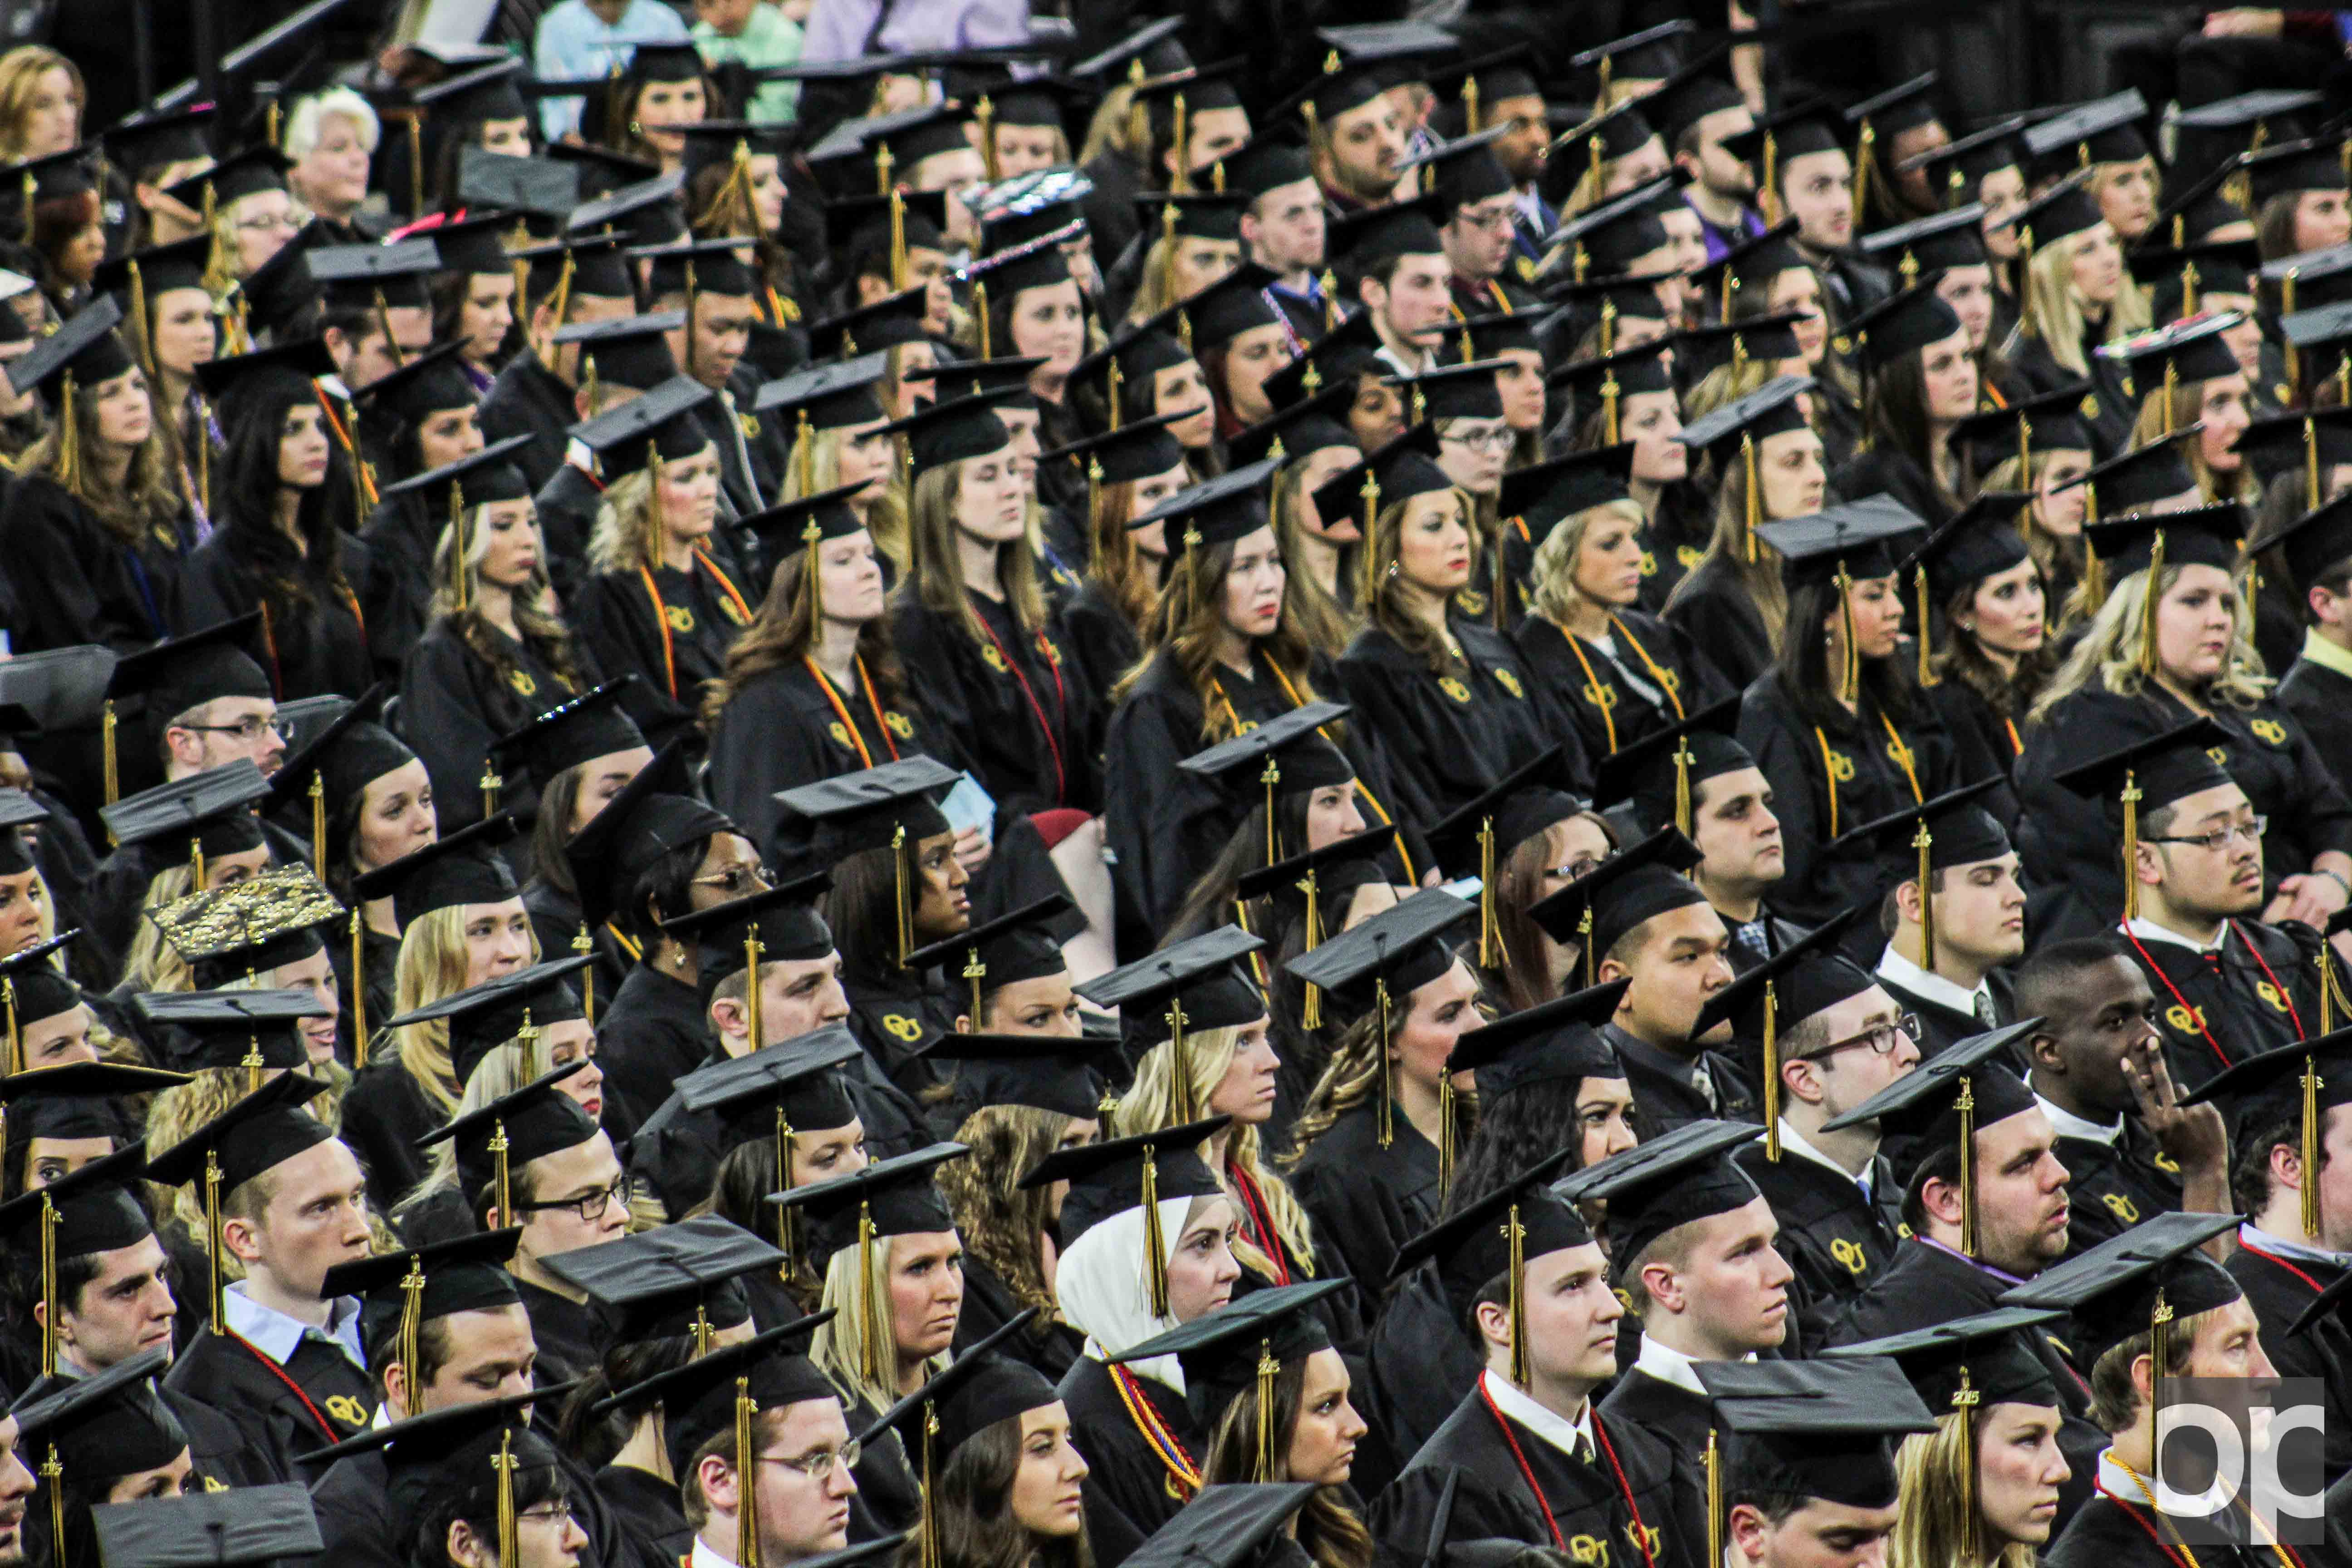 Students can deck out their graduation caps for a chance to be featured on Oakland's social media accounts.